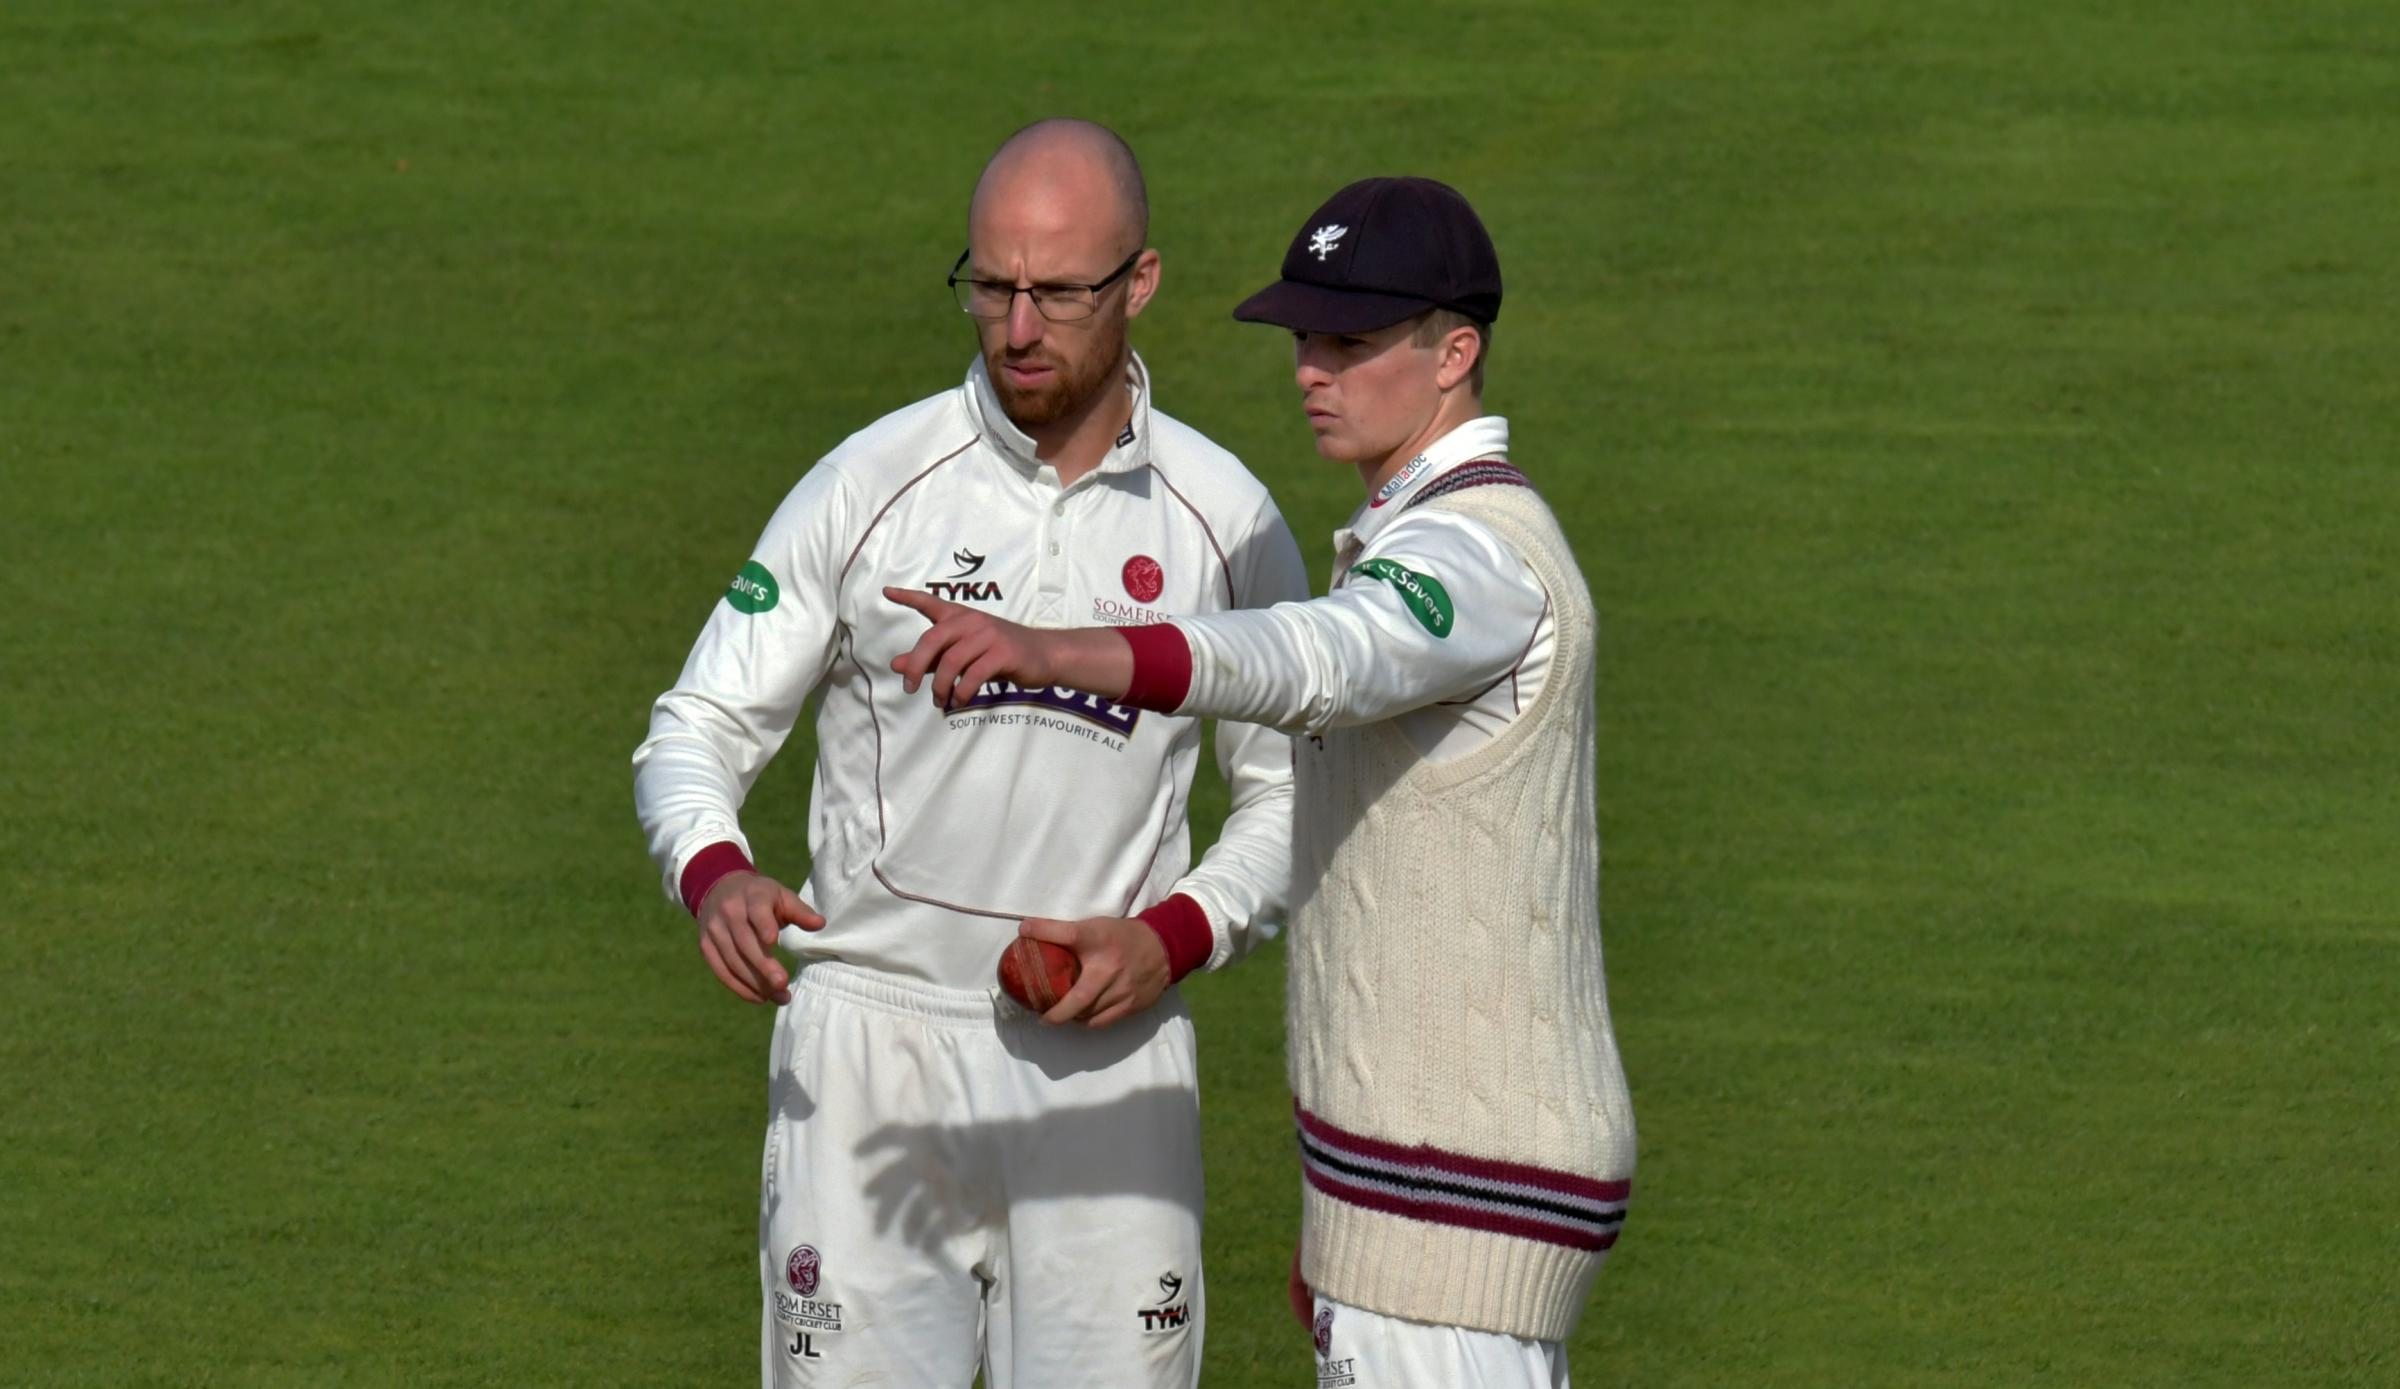 DELIGHT: Jack Leach (left) and Tom Abell have expressed their joy after Somerset secured their Division One status.